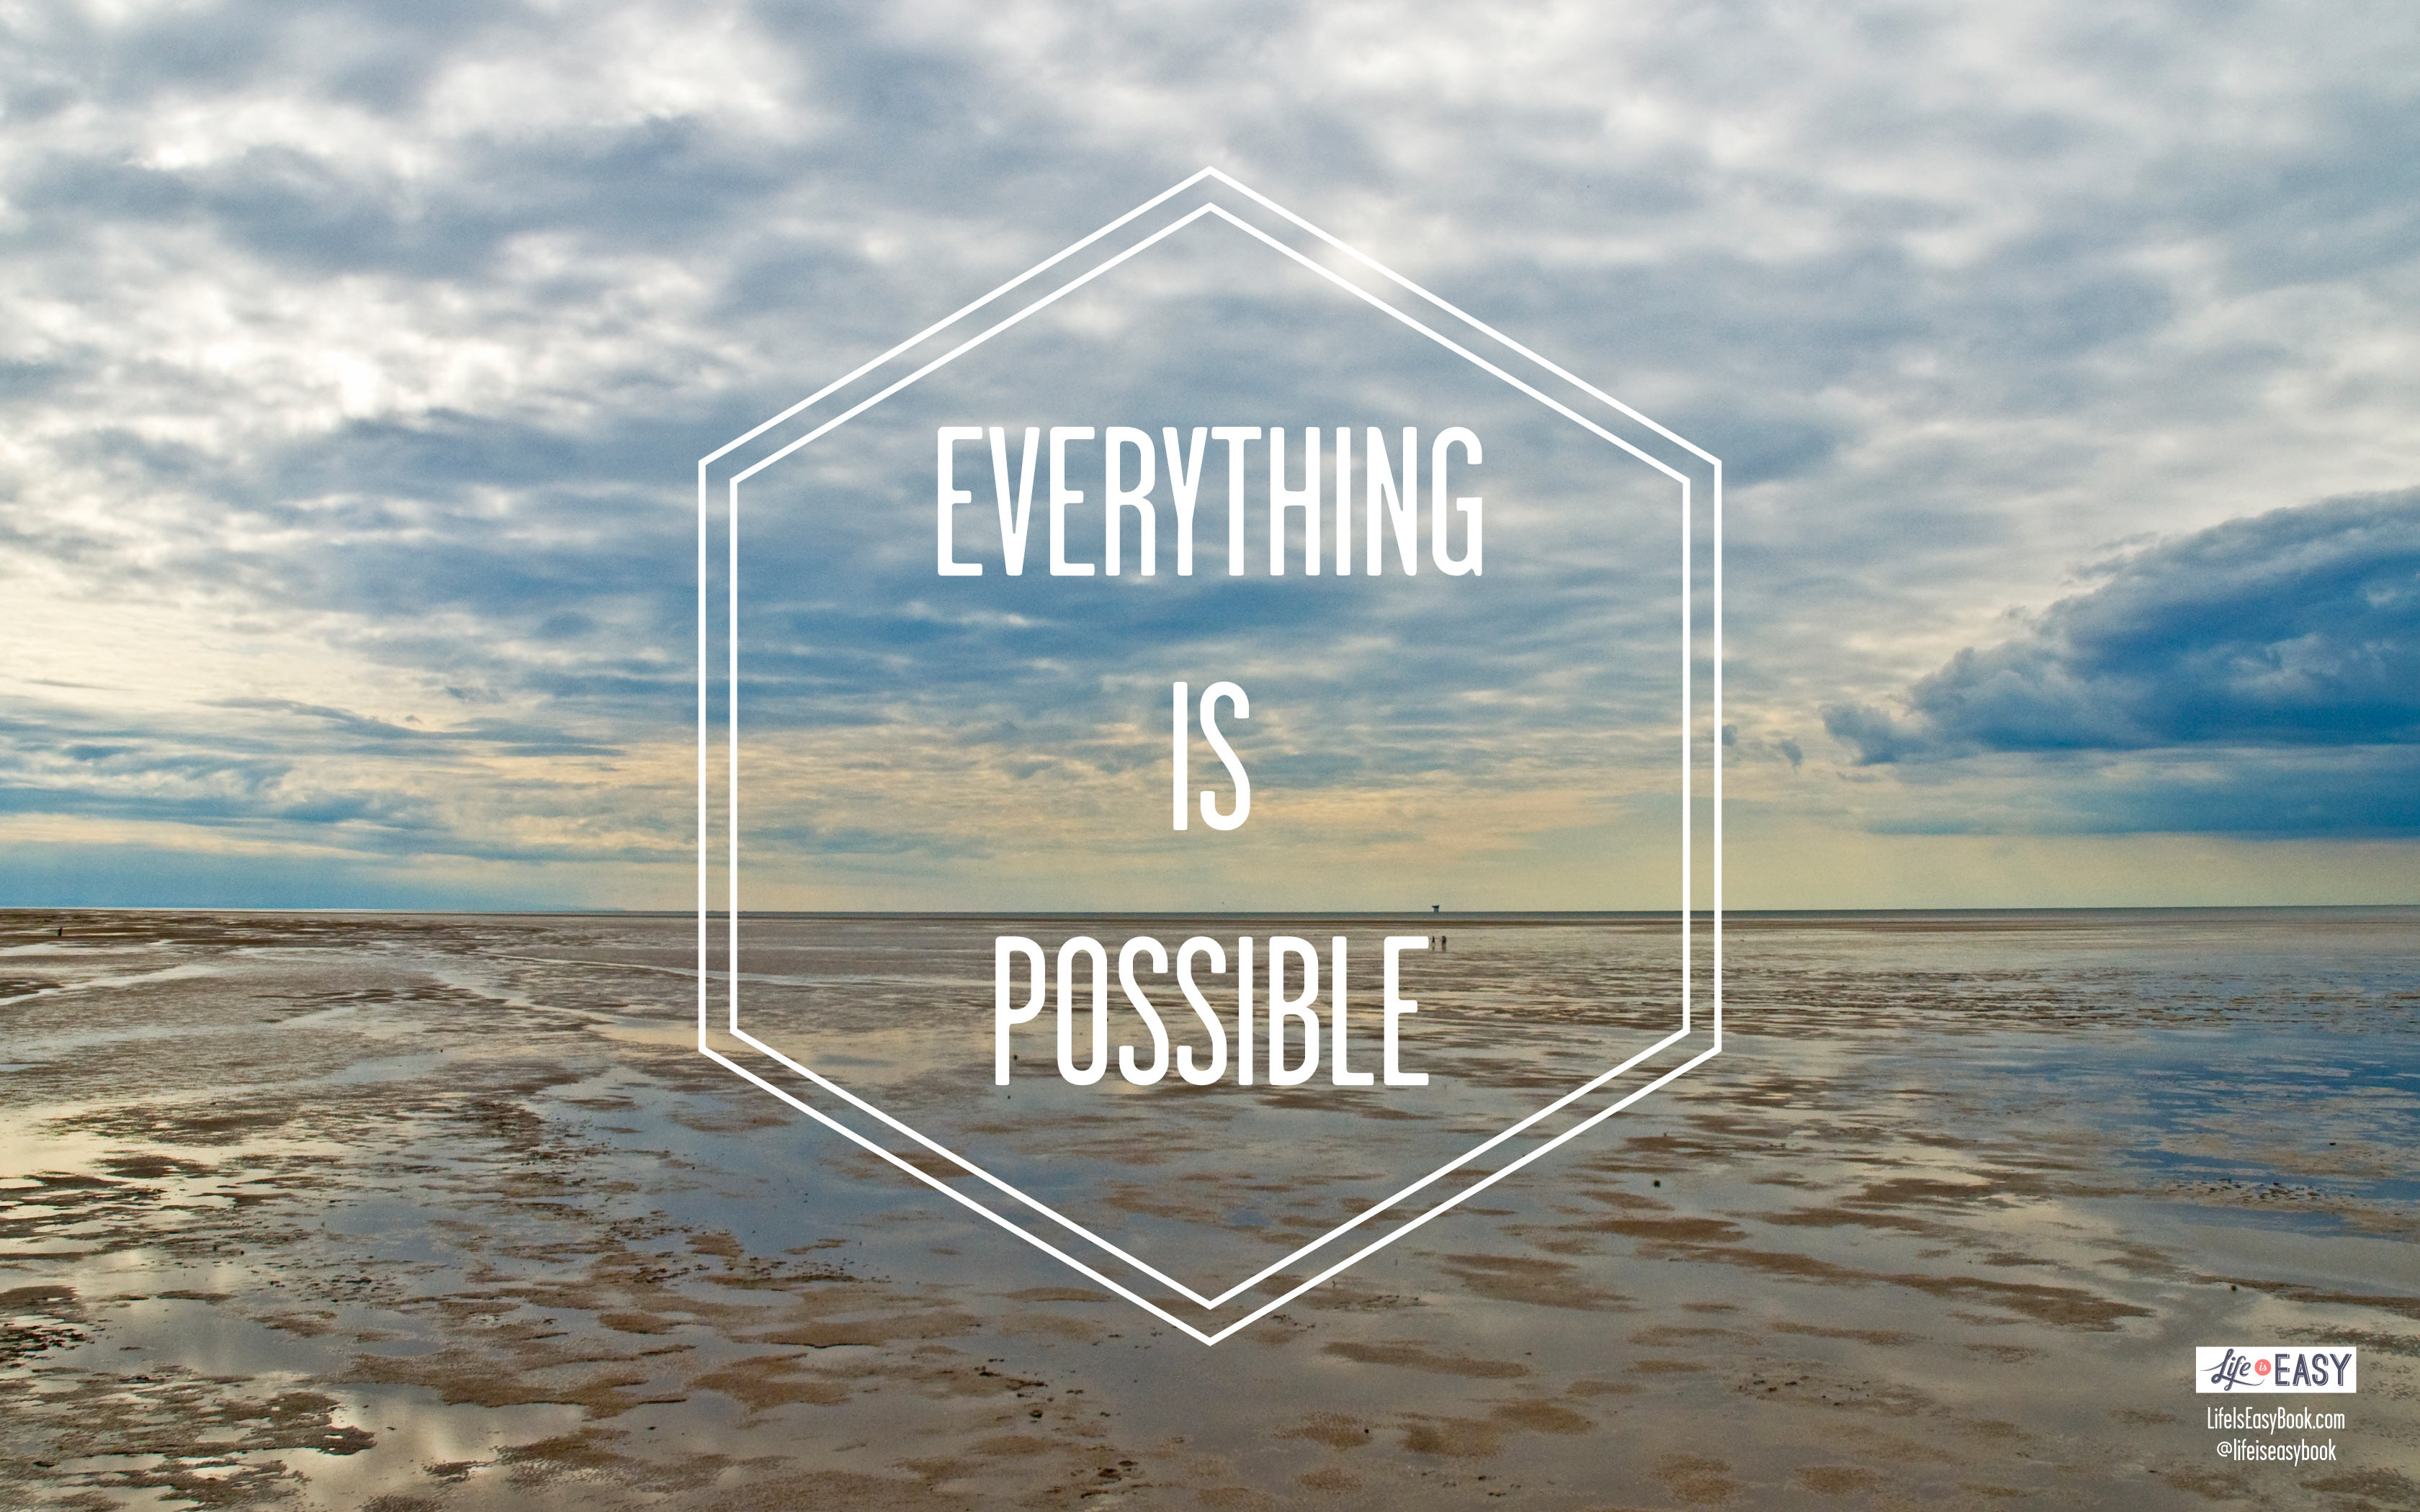 Res: 3360x2100, everything-is-possible-wallpaper-16-9-from-lifeiseasybook